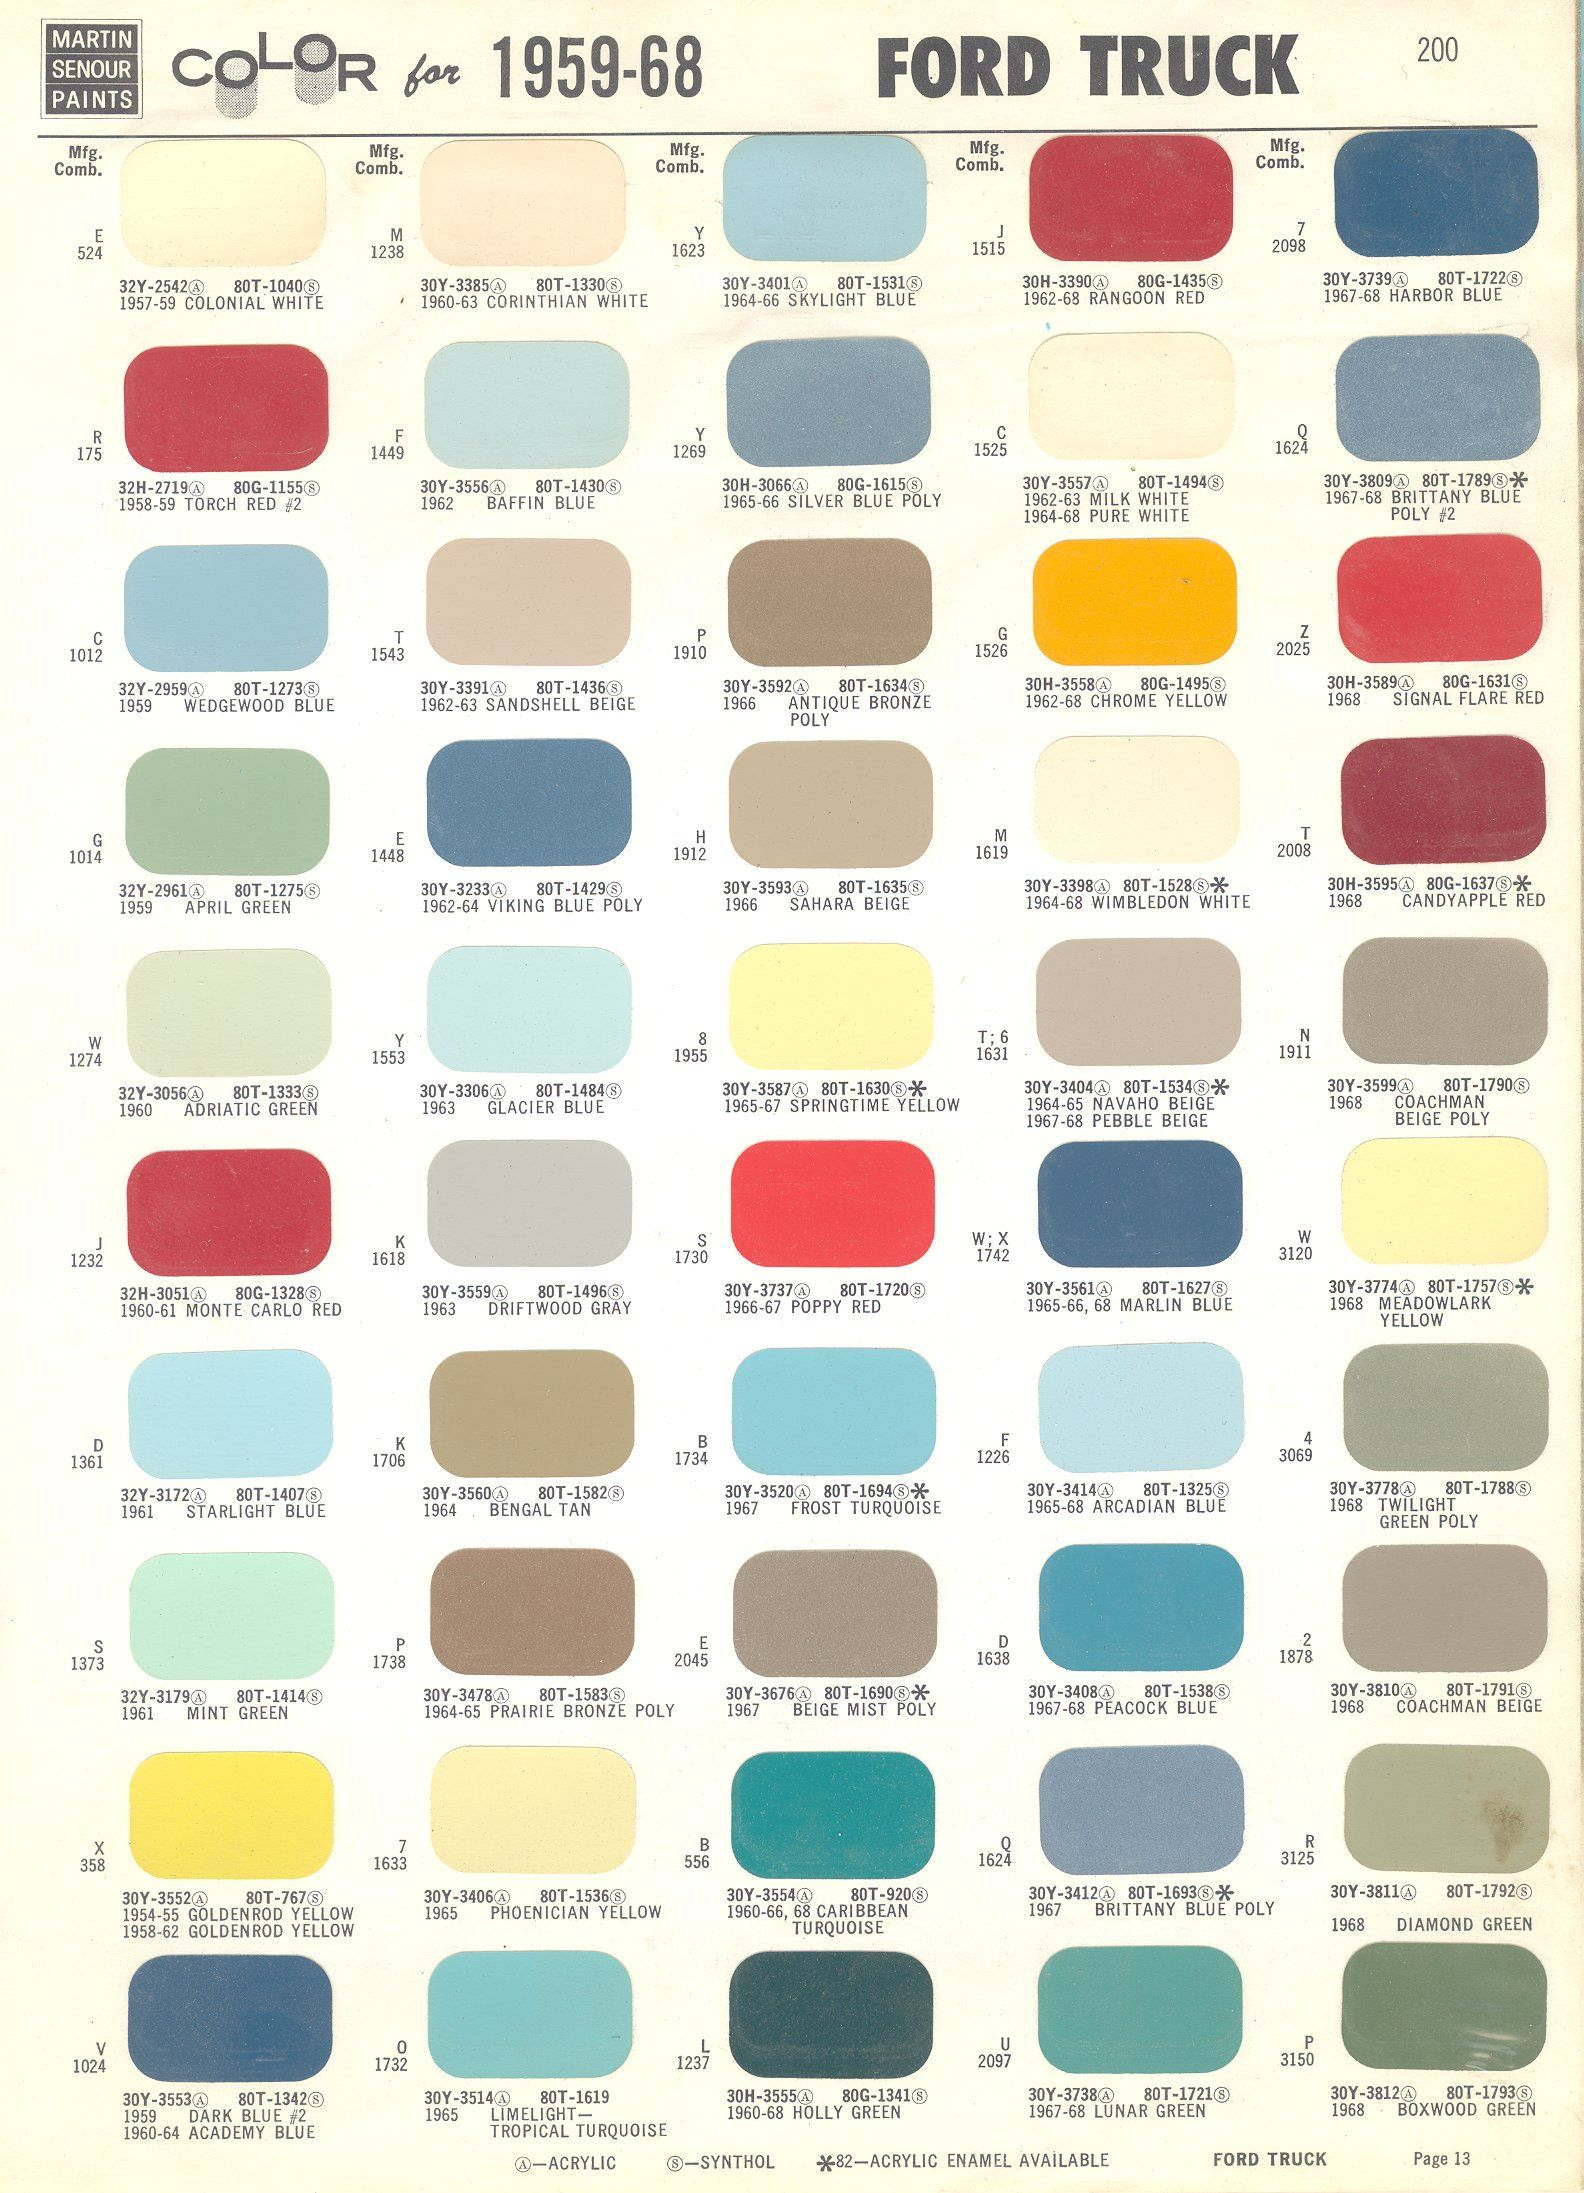 1968 ford color chart color chart for 1959 1968 ford mercury 1968 ford color chart color chart for 1959 1968 ford mercury trucks nvjuhfo Choice Image